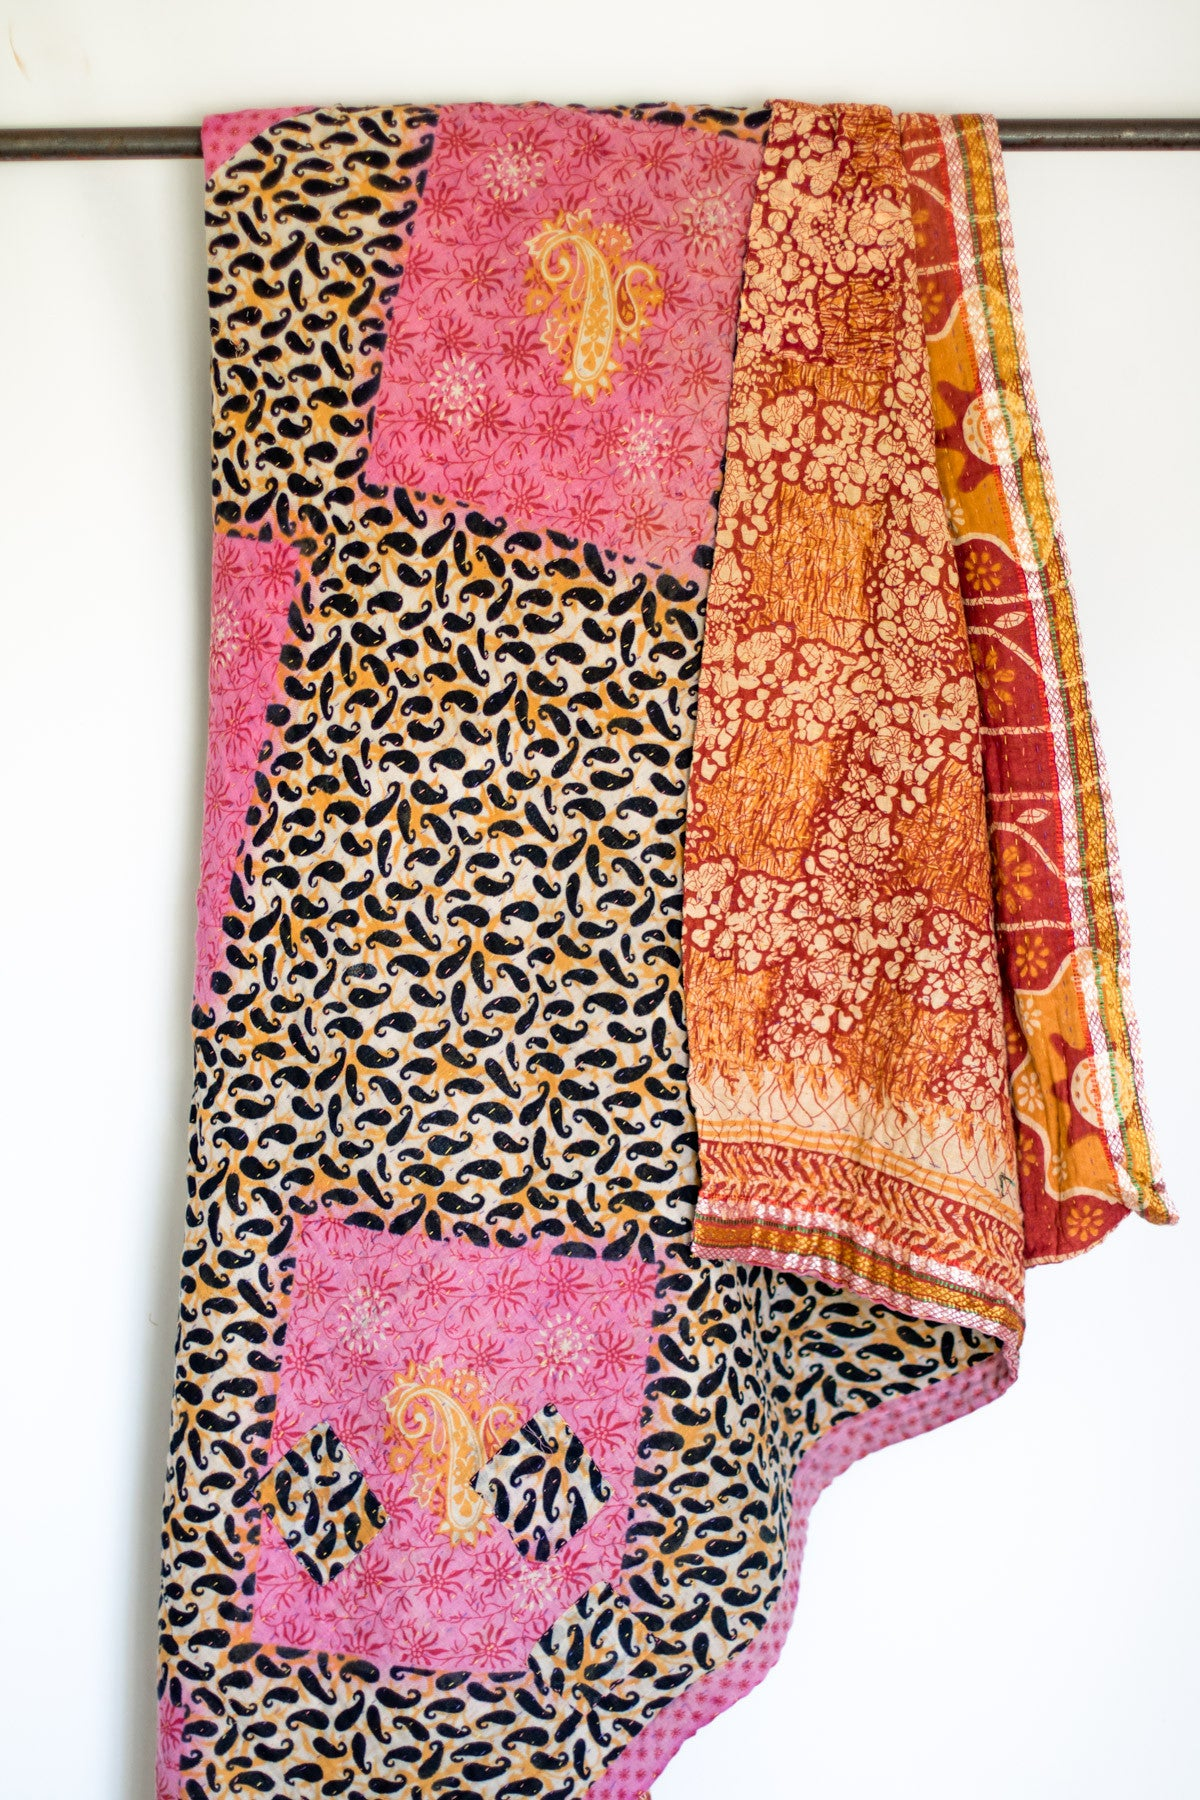 kantha quilts throw blankets bedspreads  baby blankets  dignify -  kantha large throw  dignify